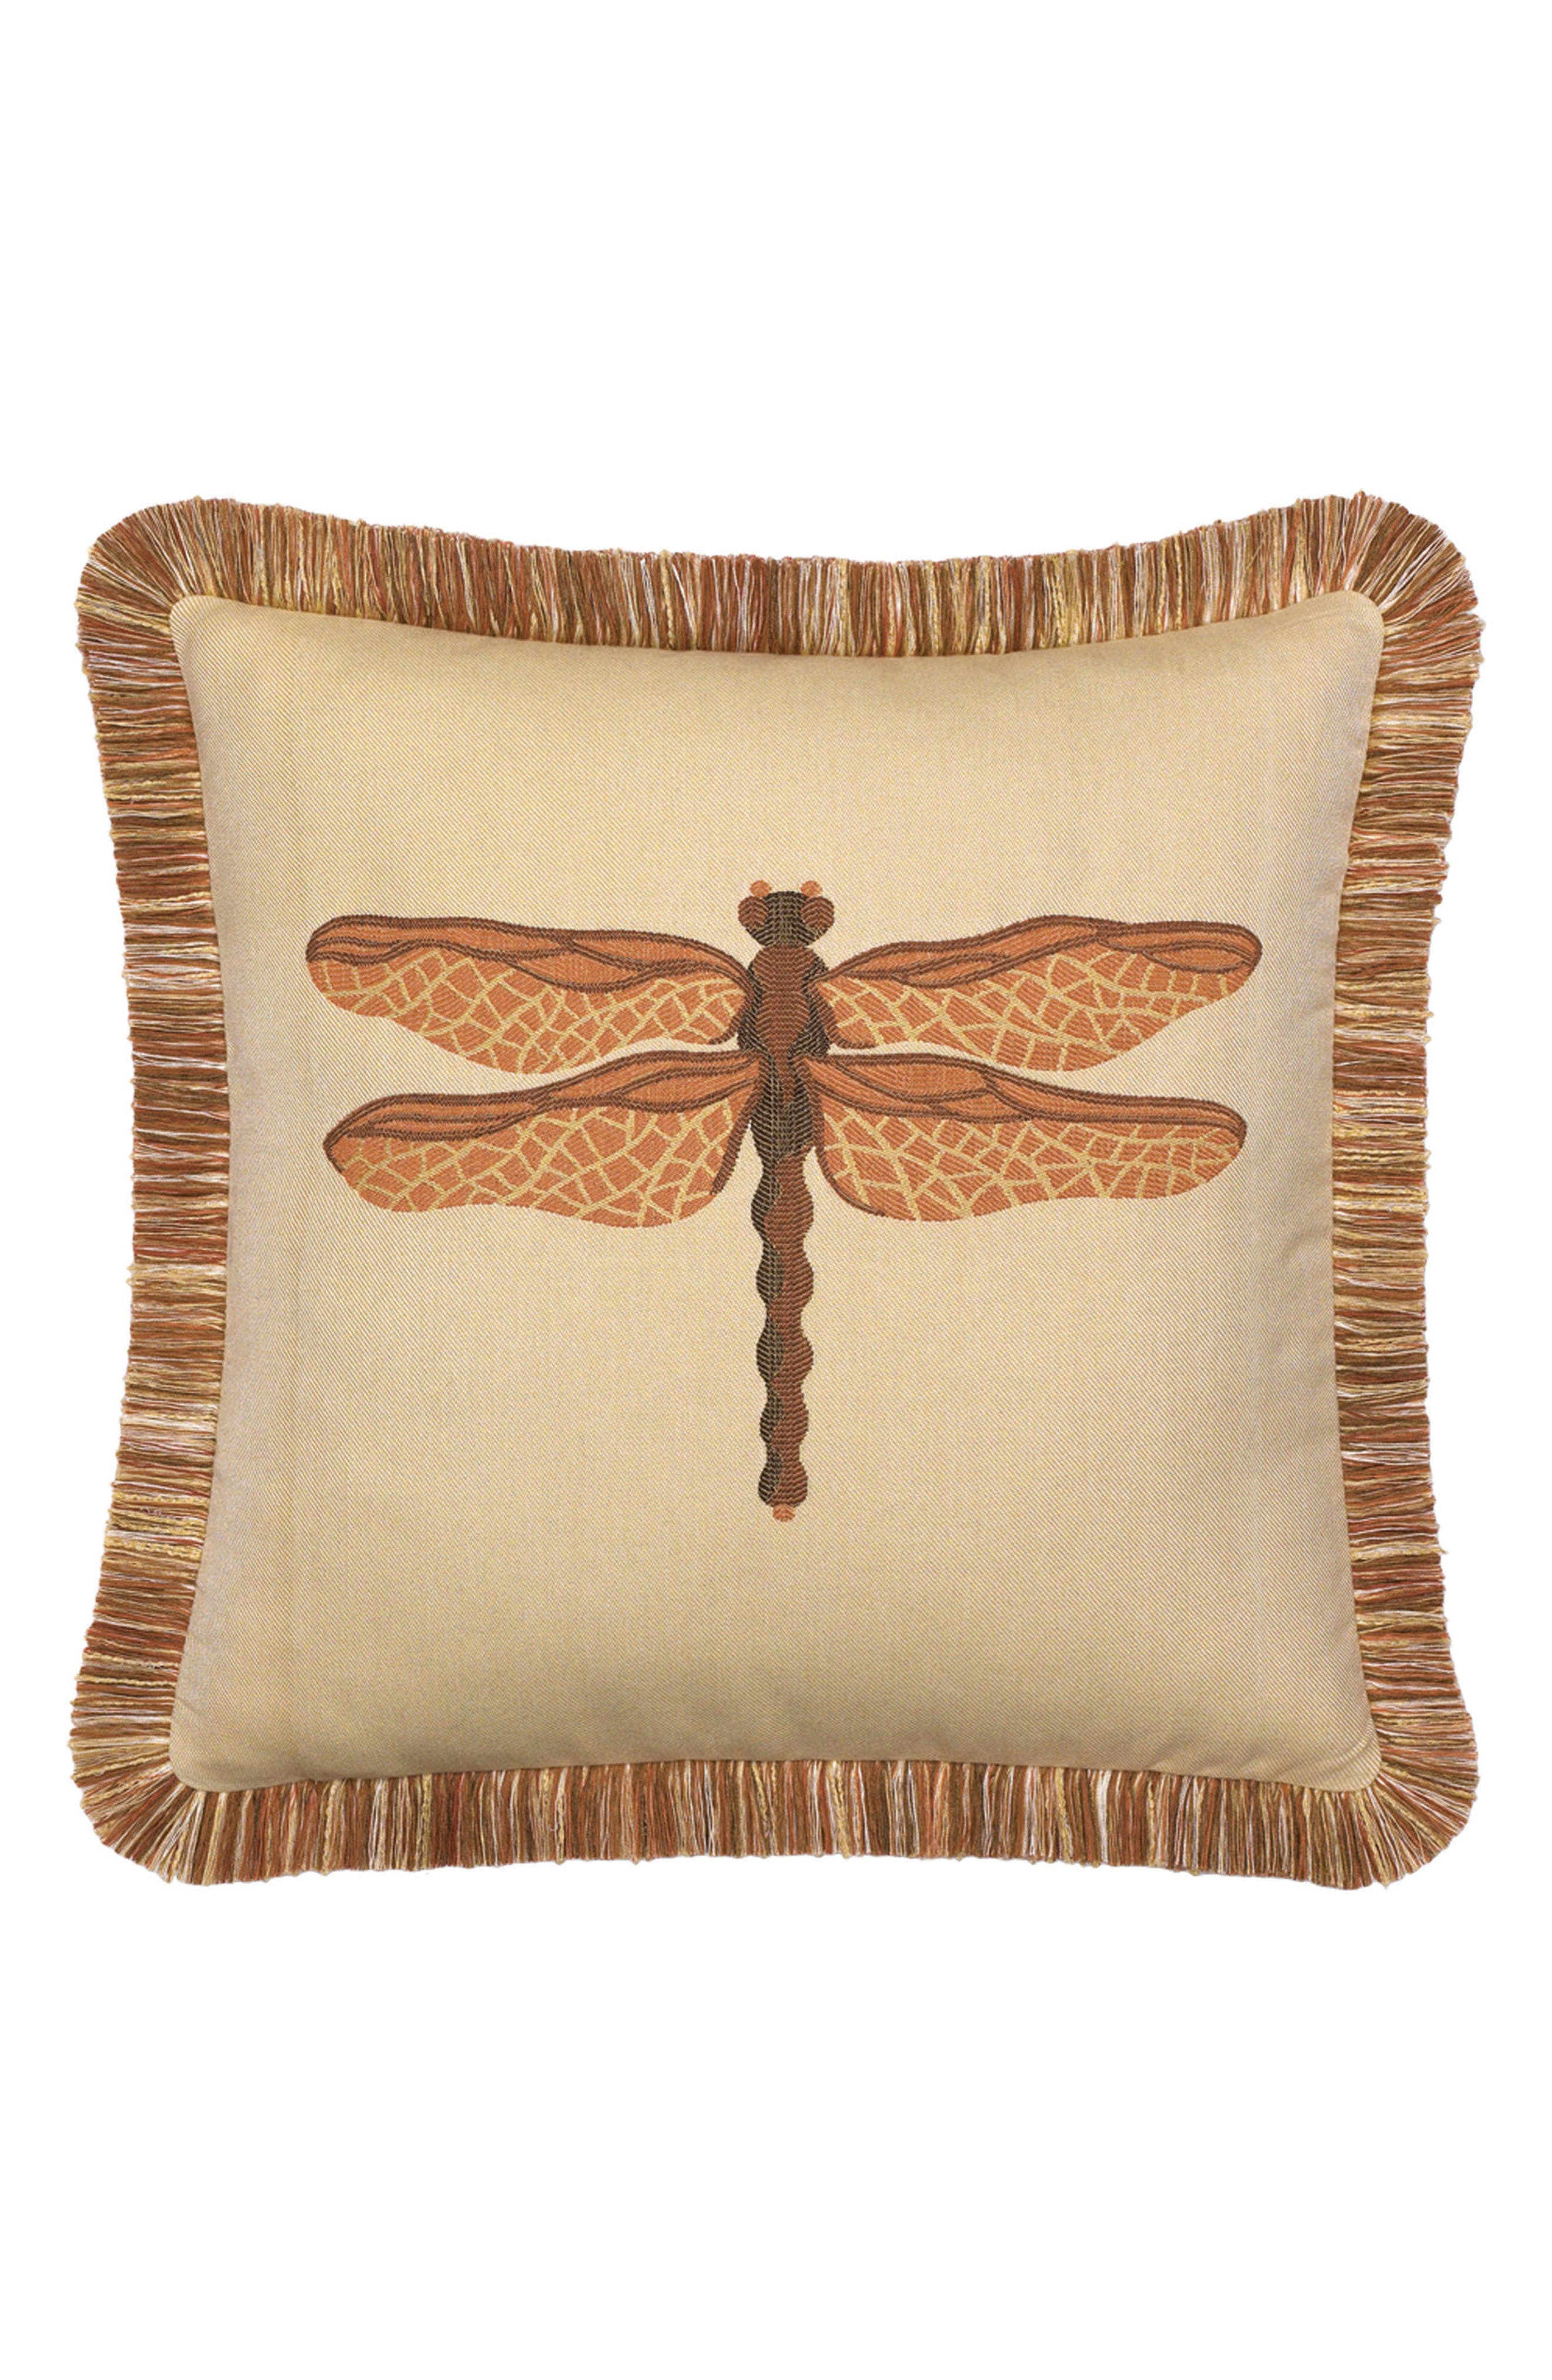 Dragonfly Indoor/Outdoor Accent Pillow,                             Main thumbnail 1, color,                             BROWN